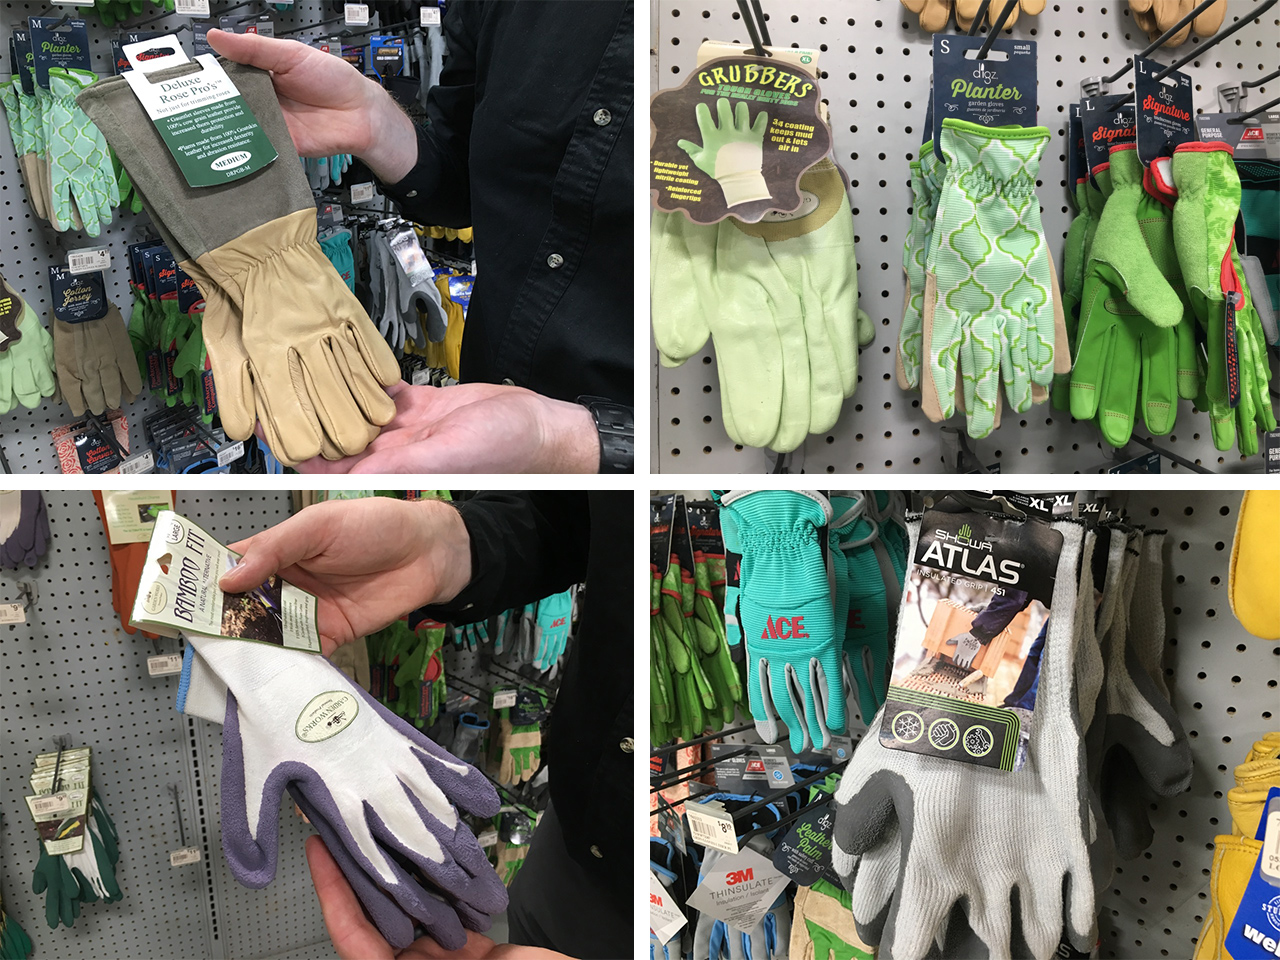 Some of our favorite gloves for yard work